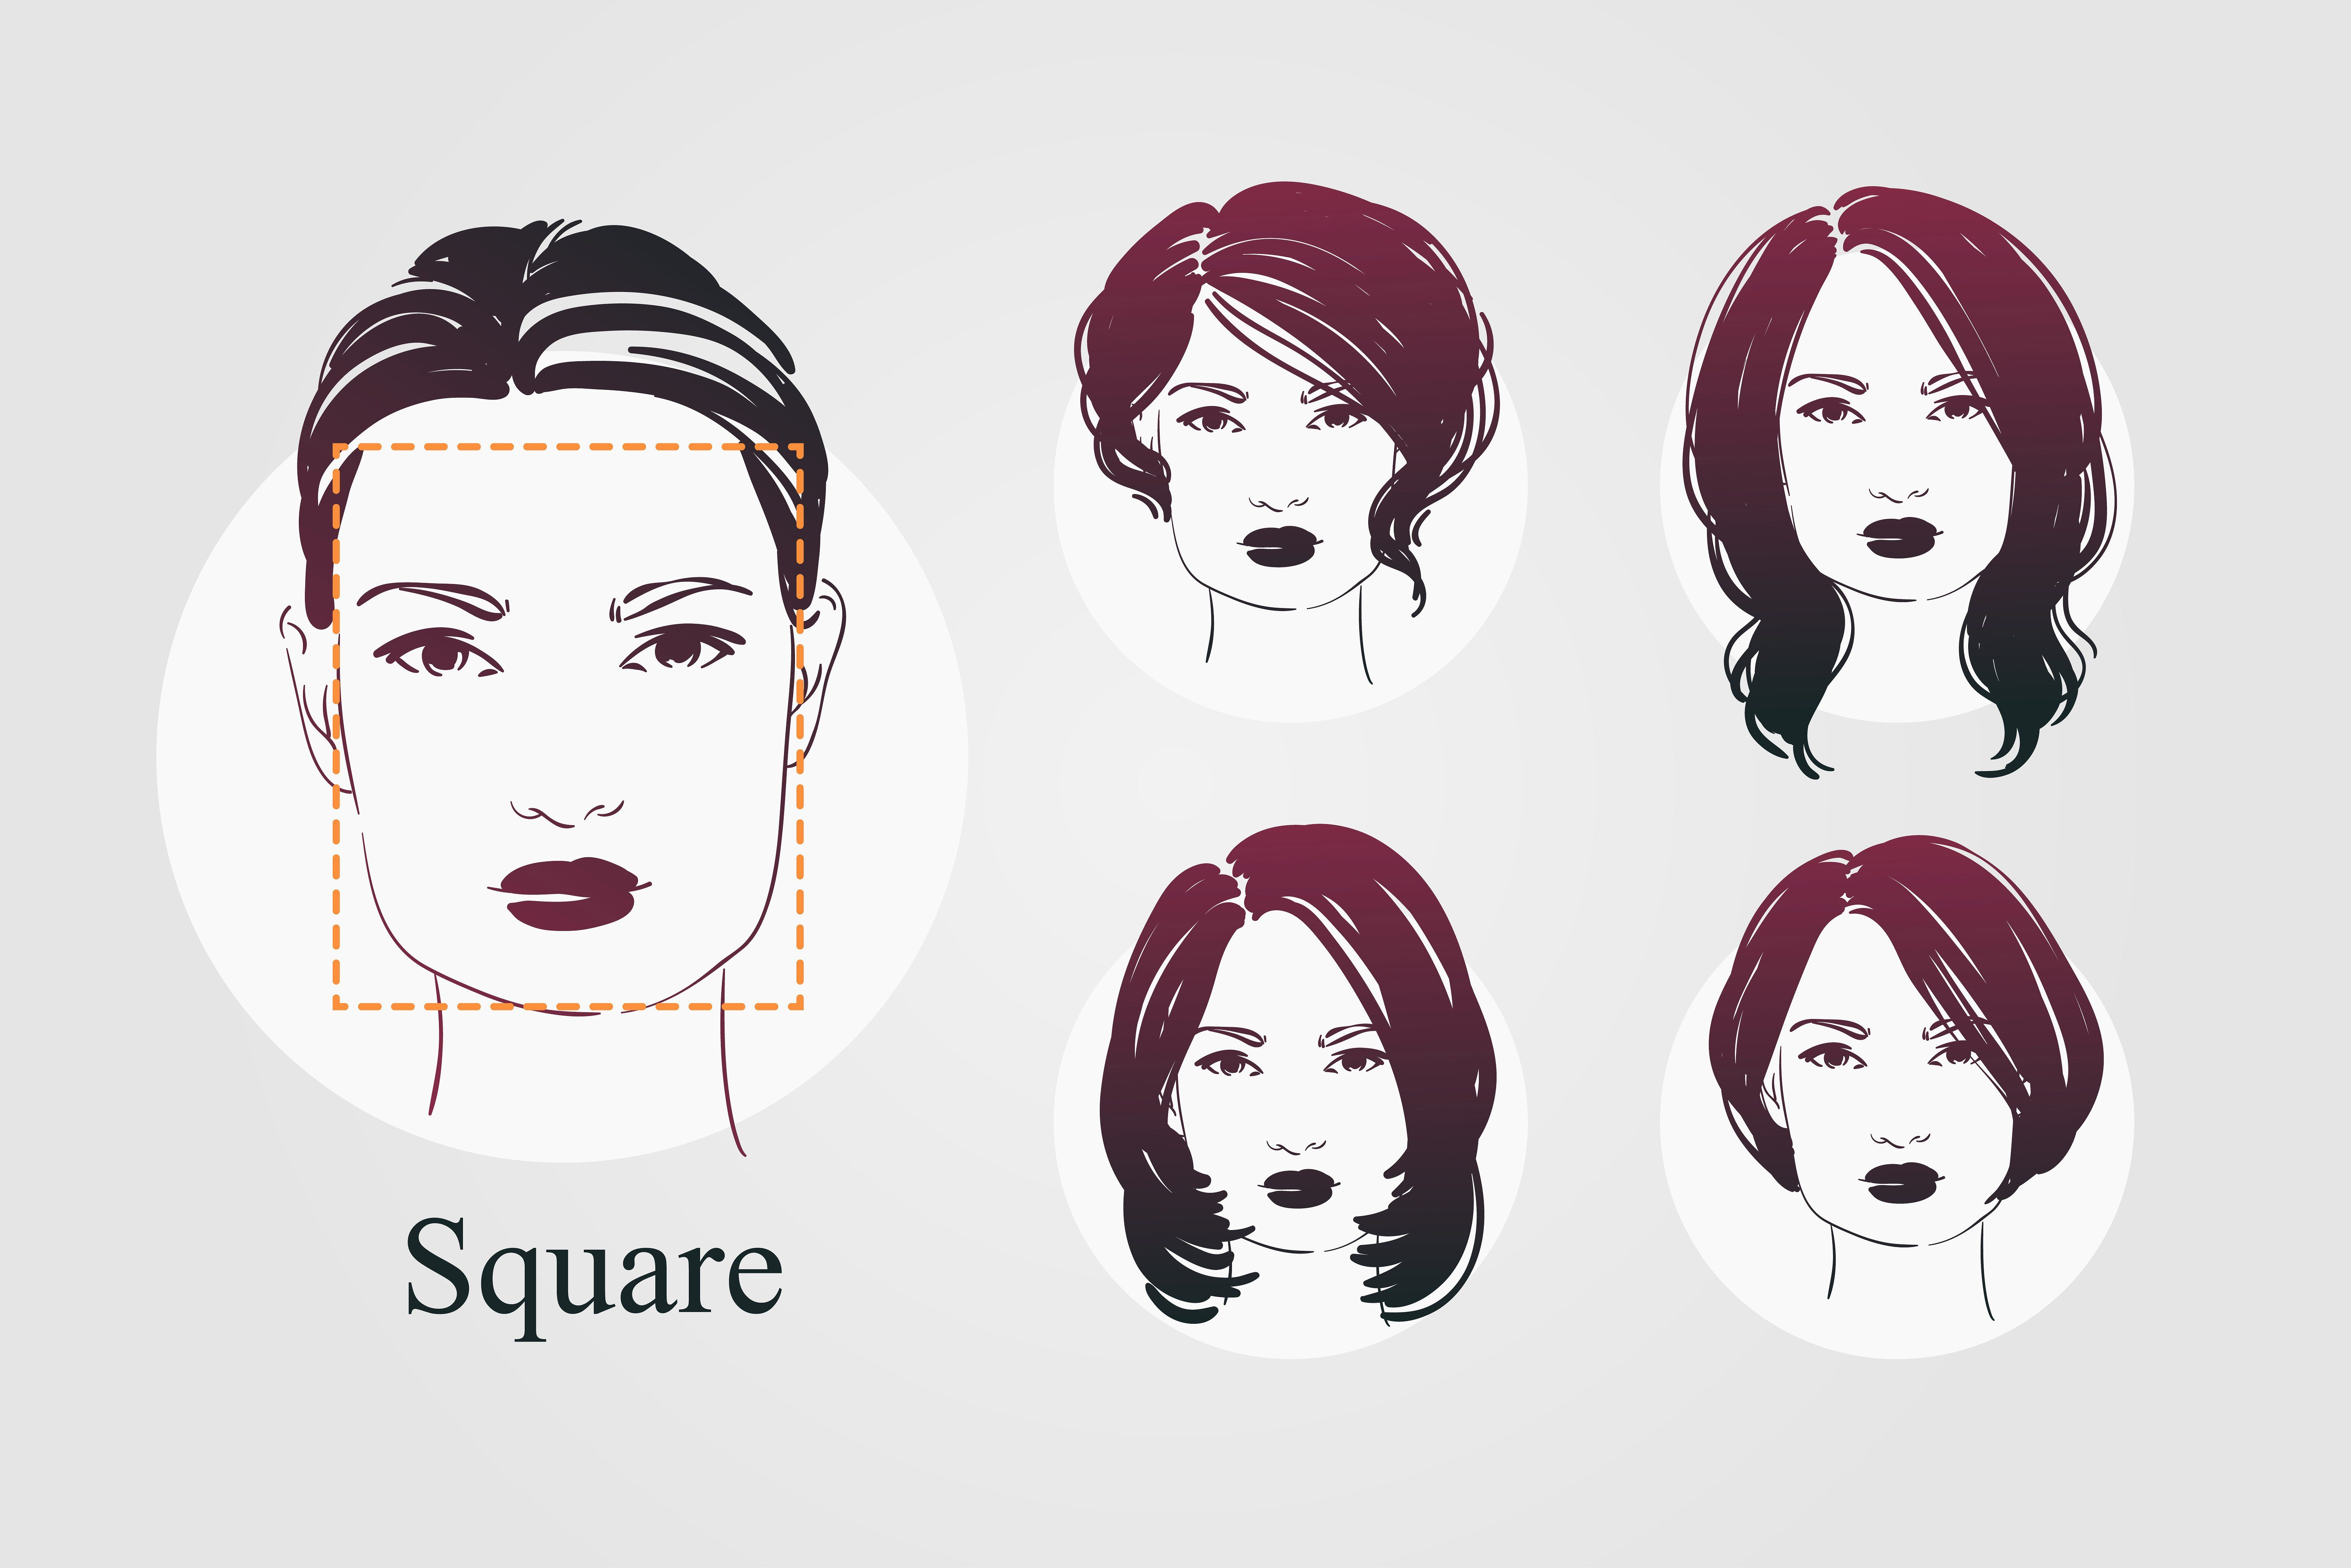 Illustration Types Of Faces Square Face Hairstyles